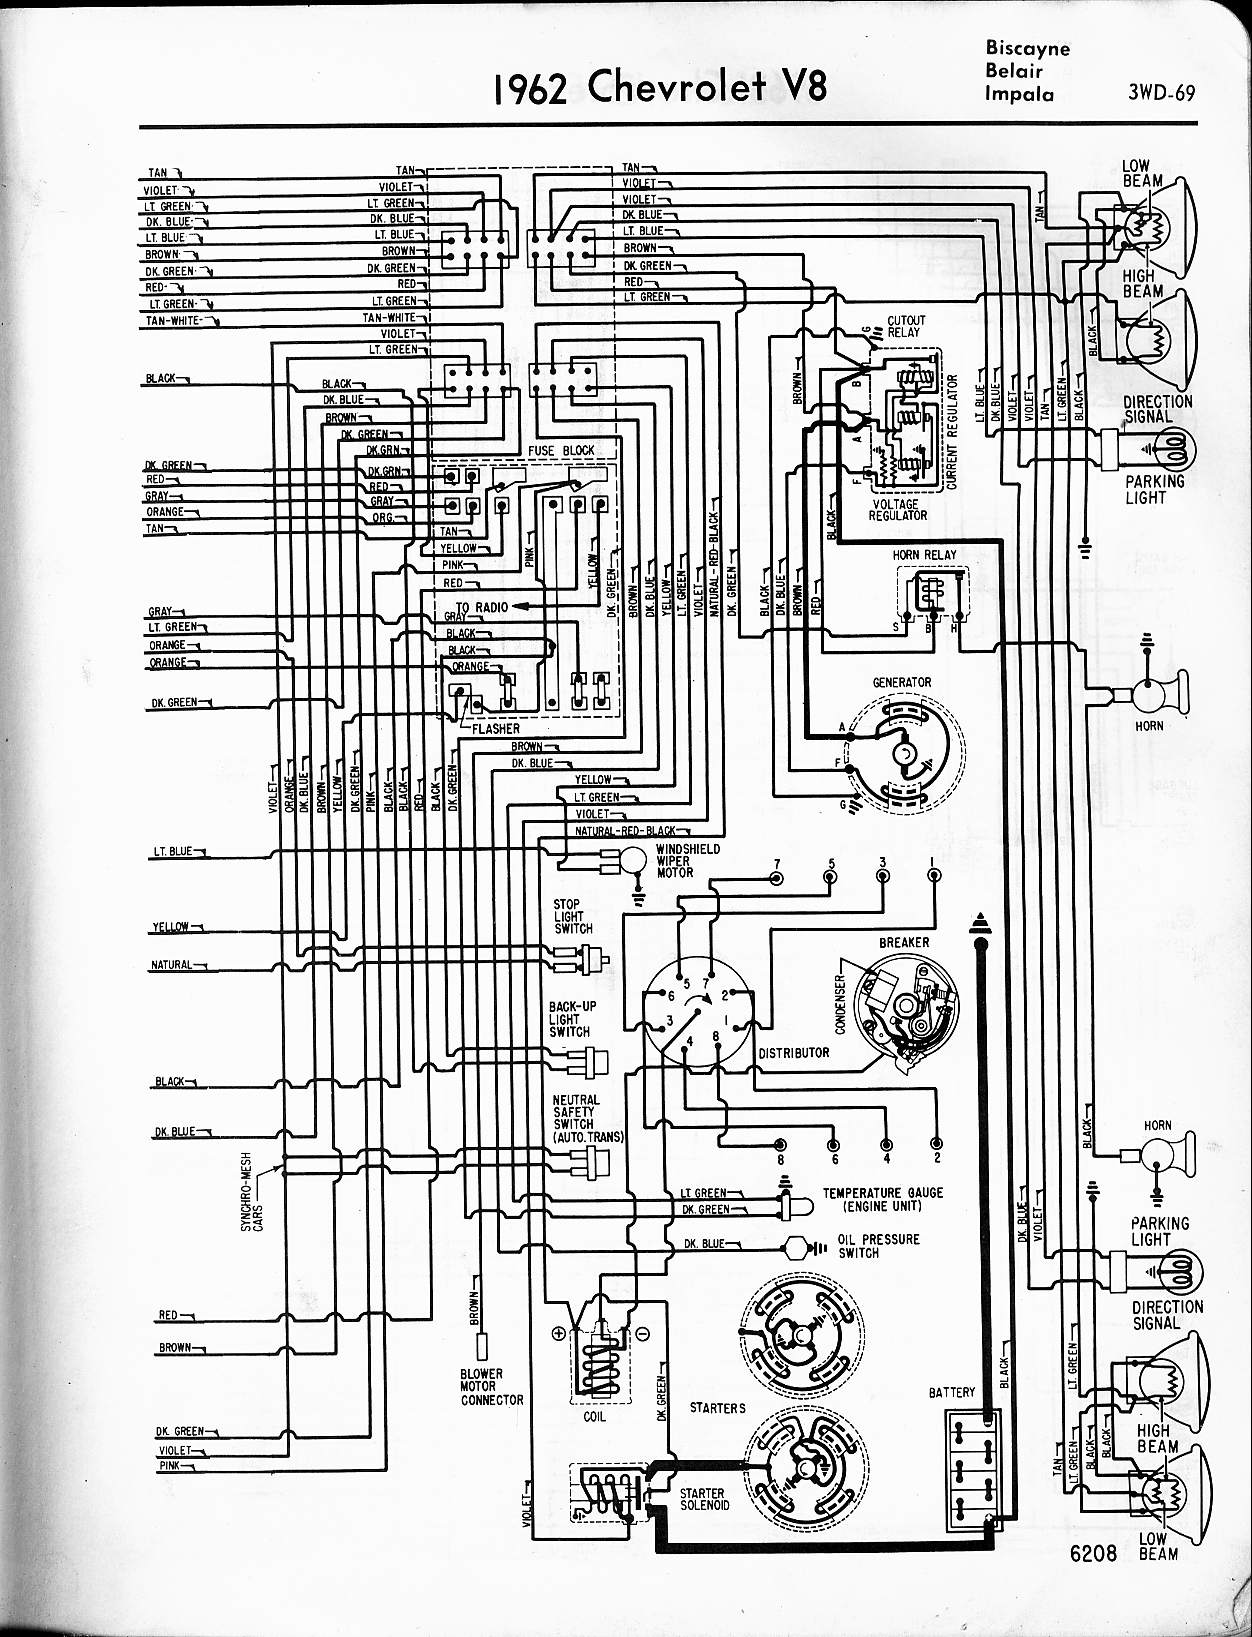 66 corvair wiring diagram just wiring data 1958 chevy ammeter wiring schematic 57 65 chevy wiring diagrams lincoln wiring diagram 66 corvair wiring diagram